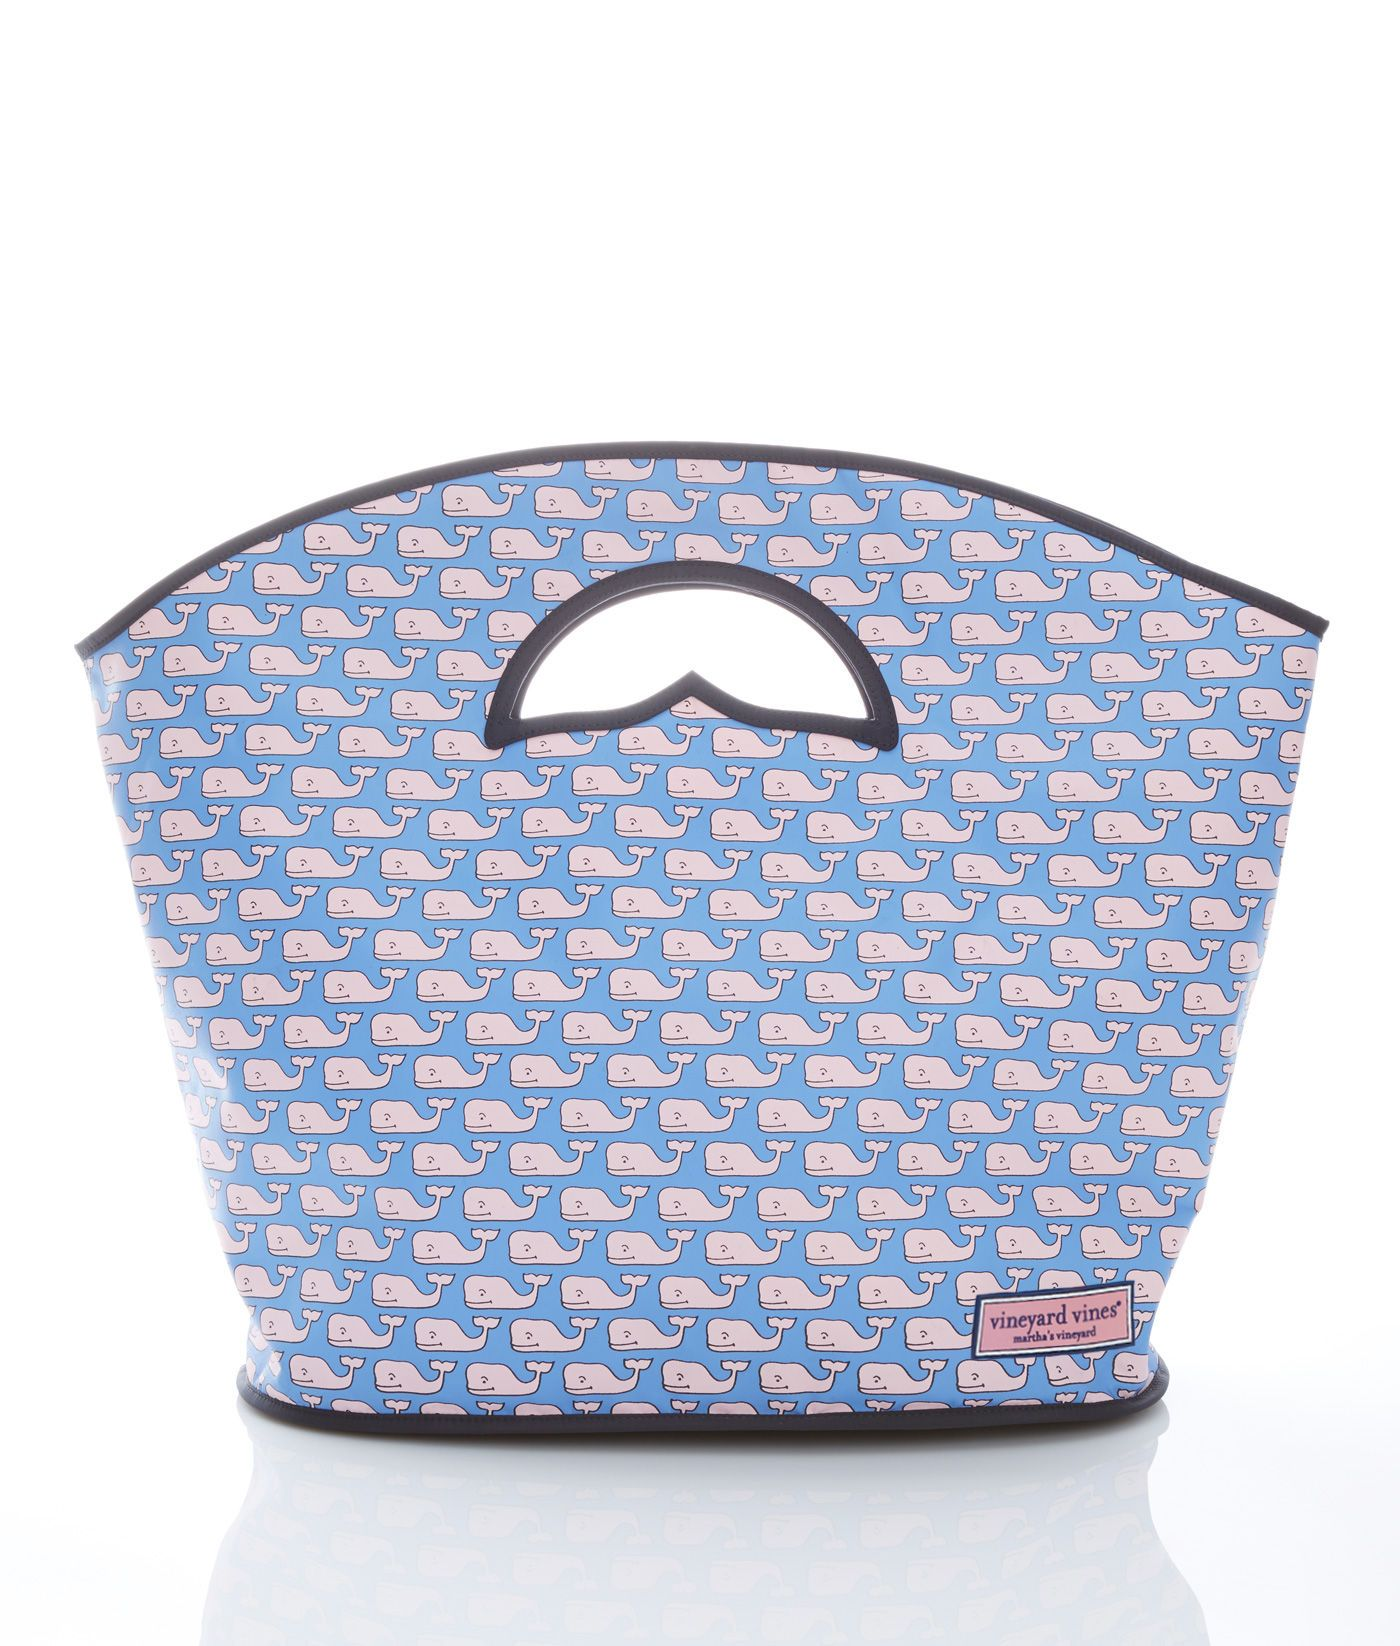 Accessories Whales Beach Tote Vineyard Vines Love The Whale Tail Handle